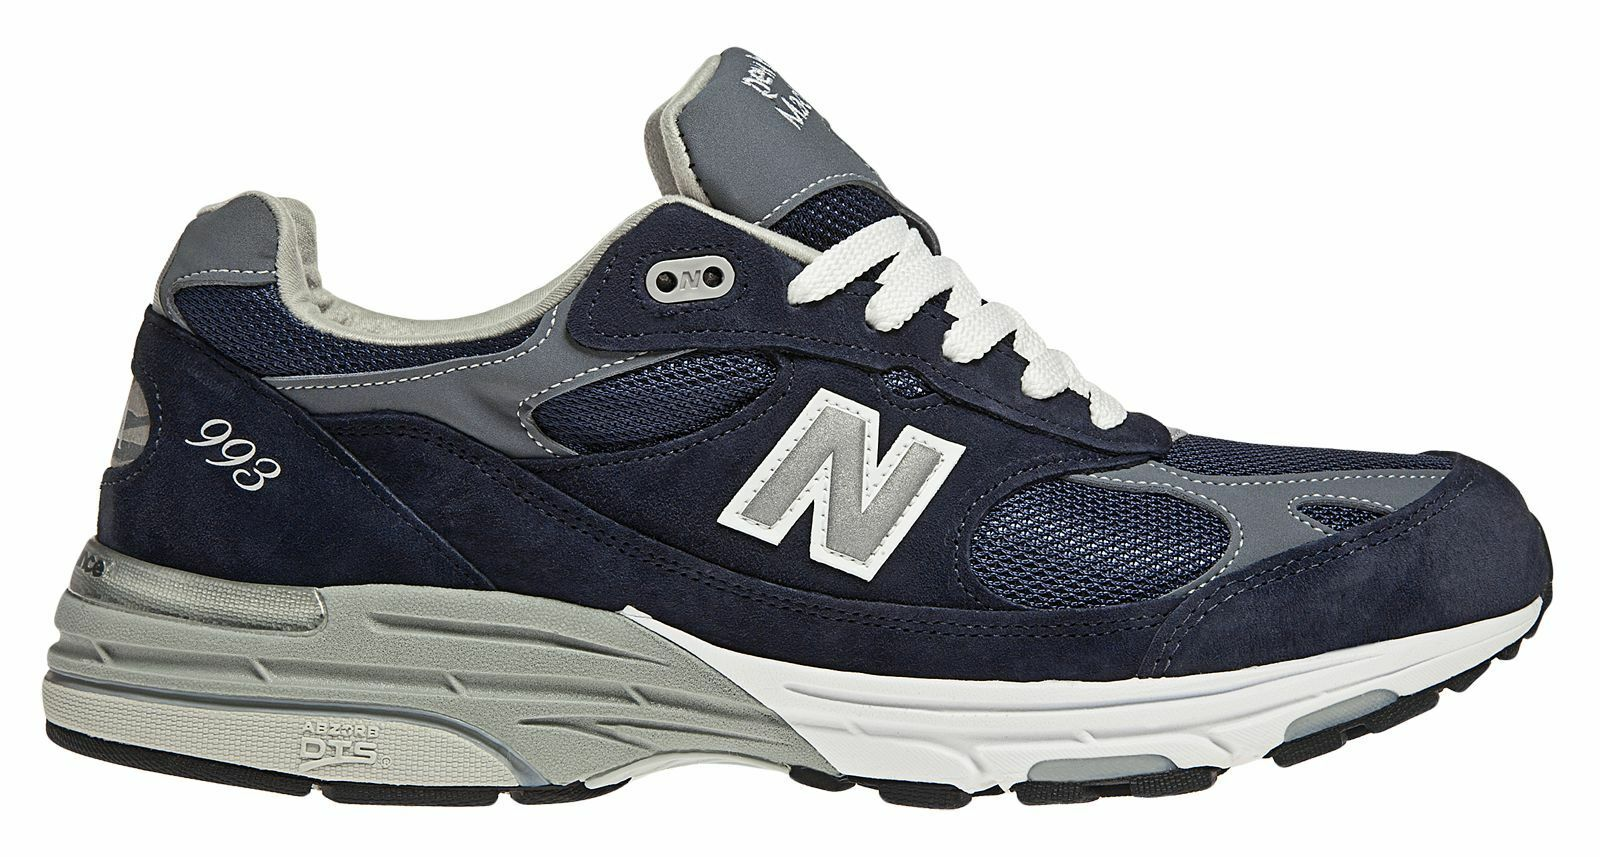 New Balance Men's Classic 993 Running shoes bluee with White